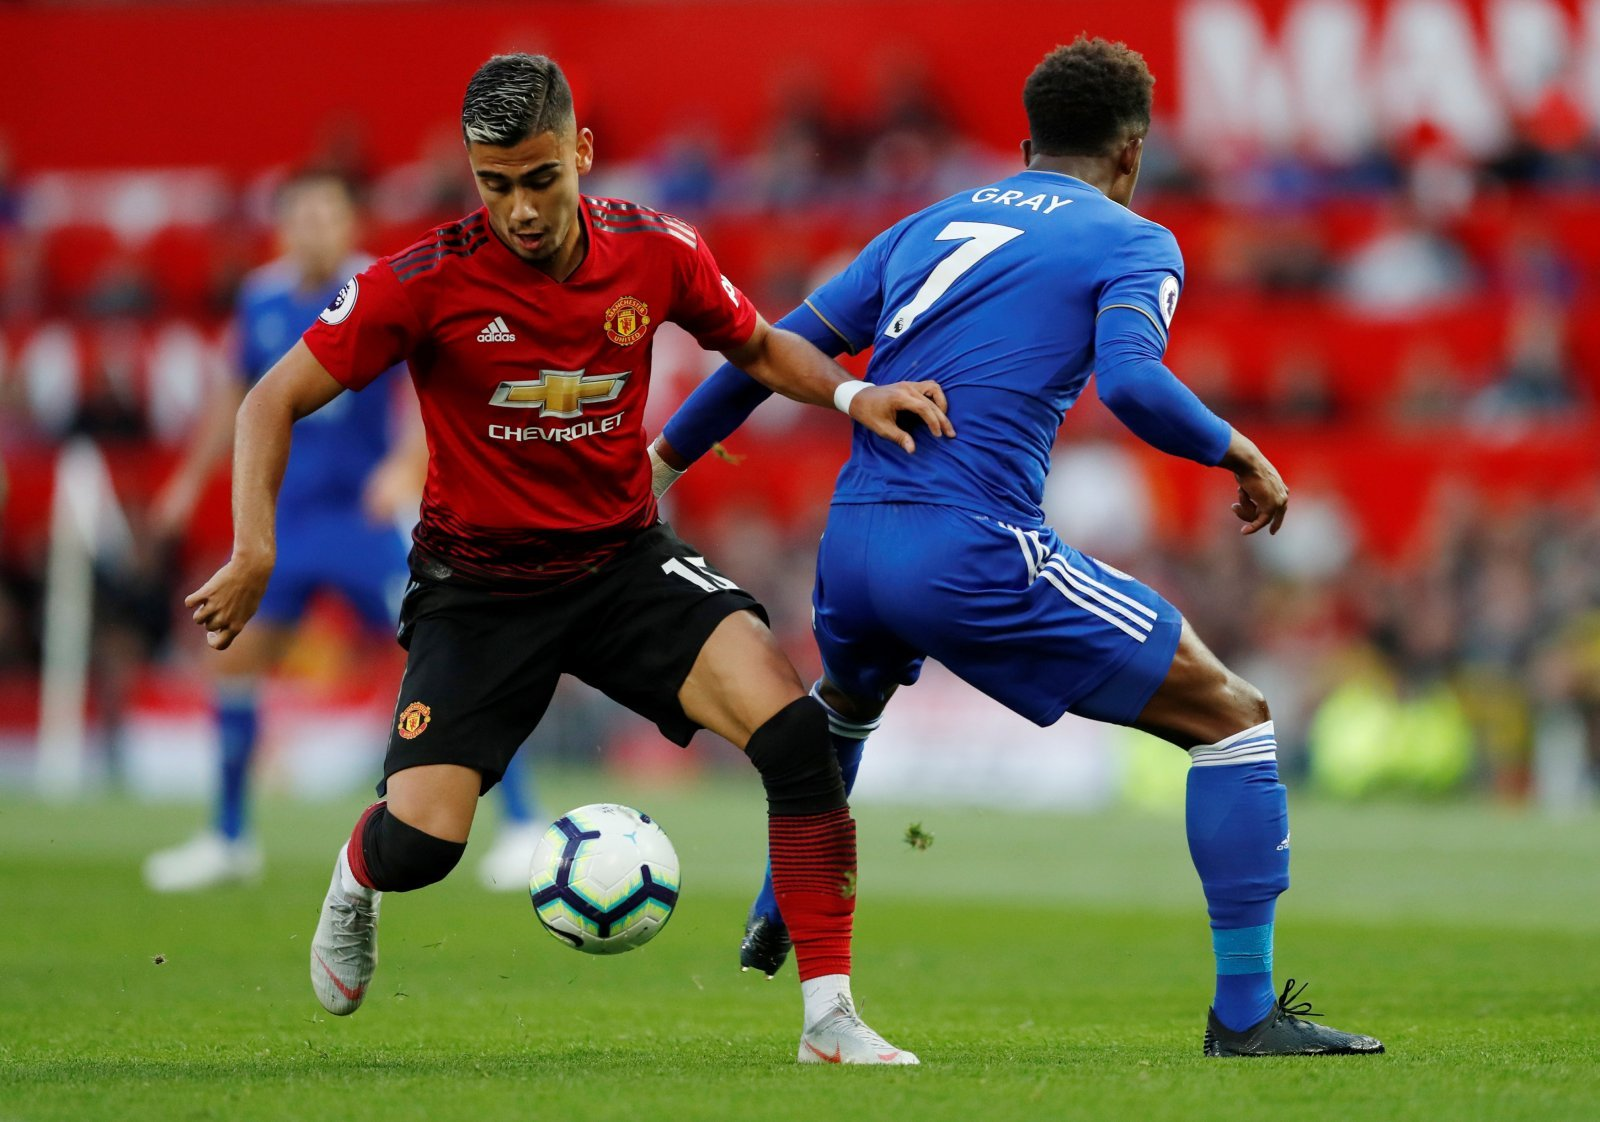 Andreas Pereira: The man to help Manchester United make a statement tonight